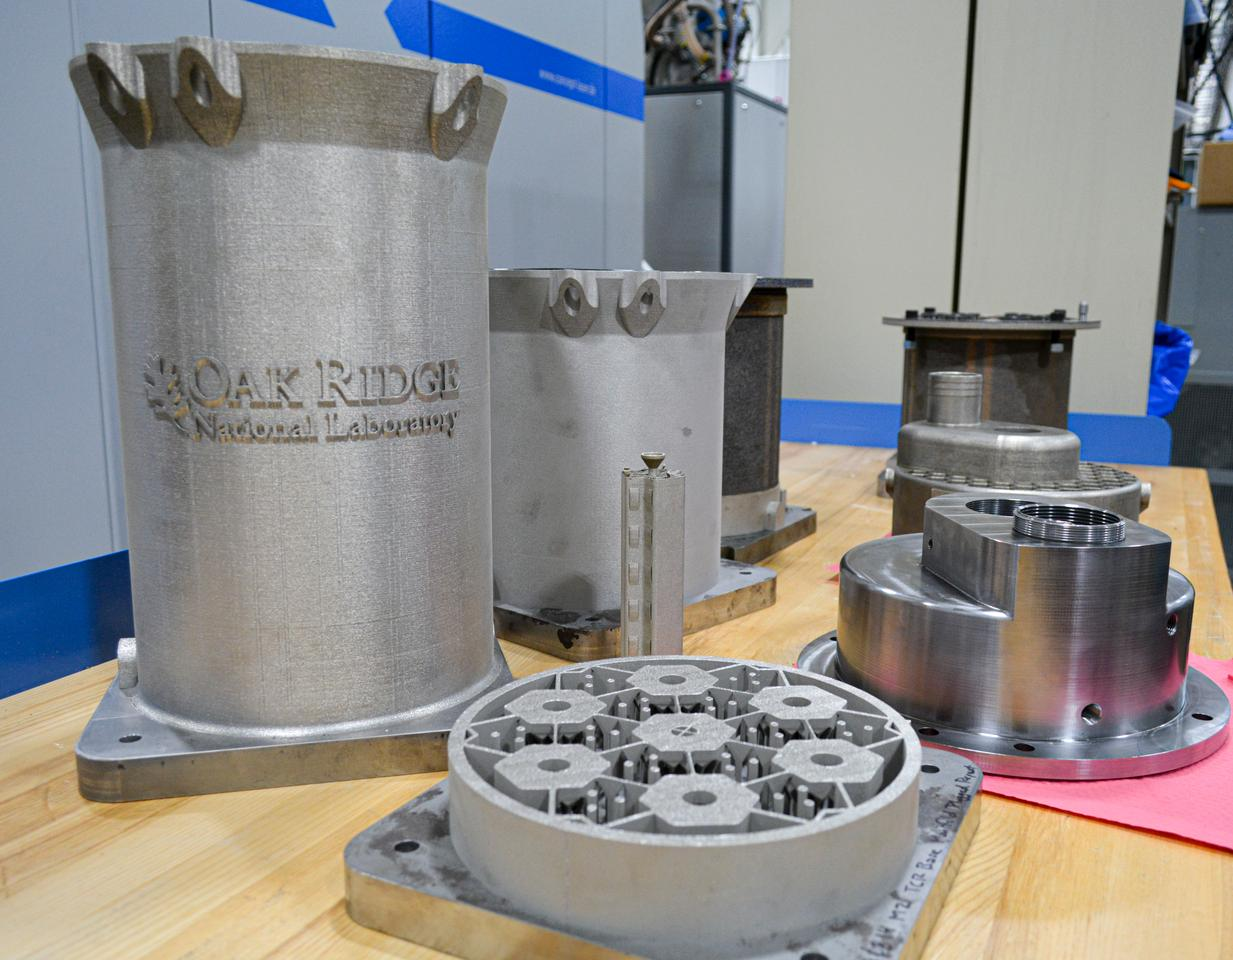 3D-printed components for the prototype reactor